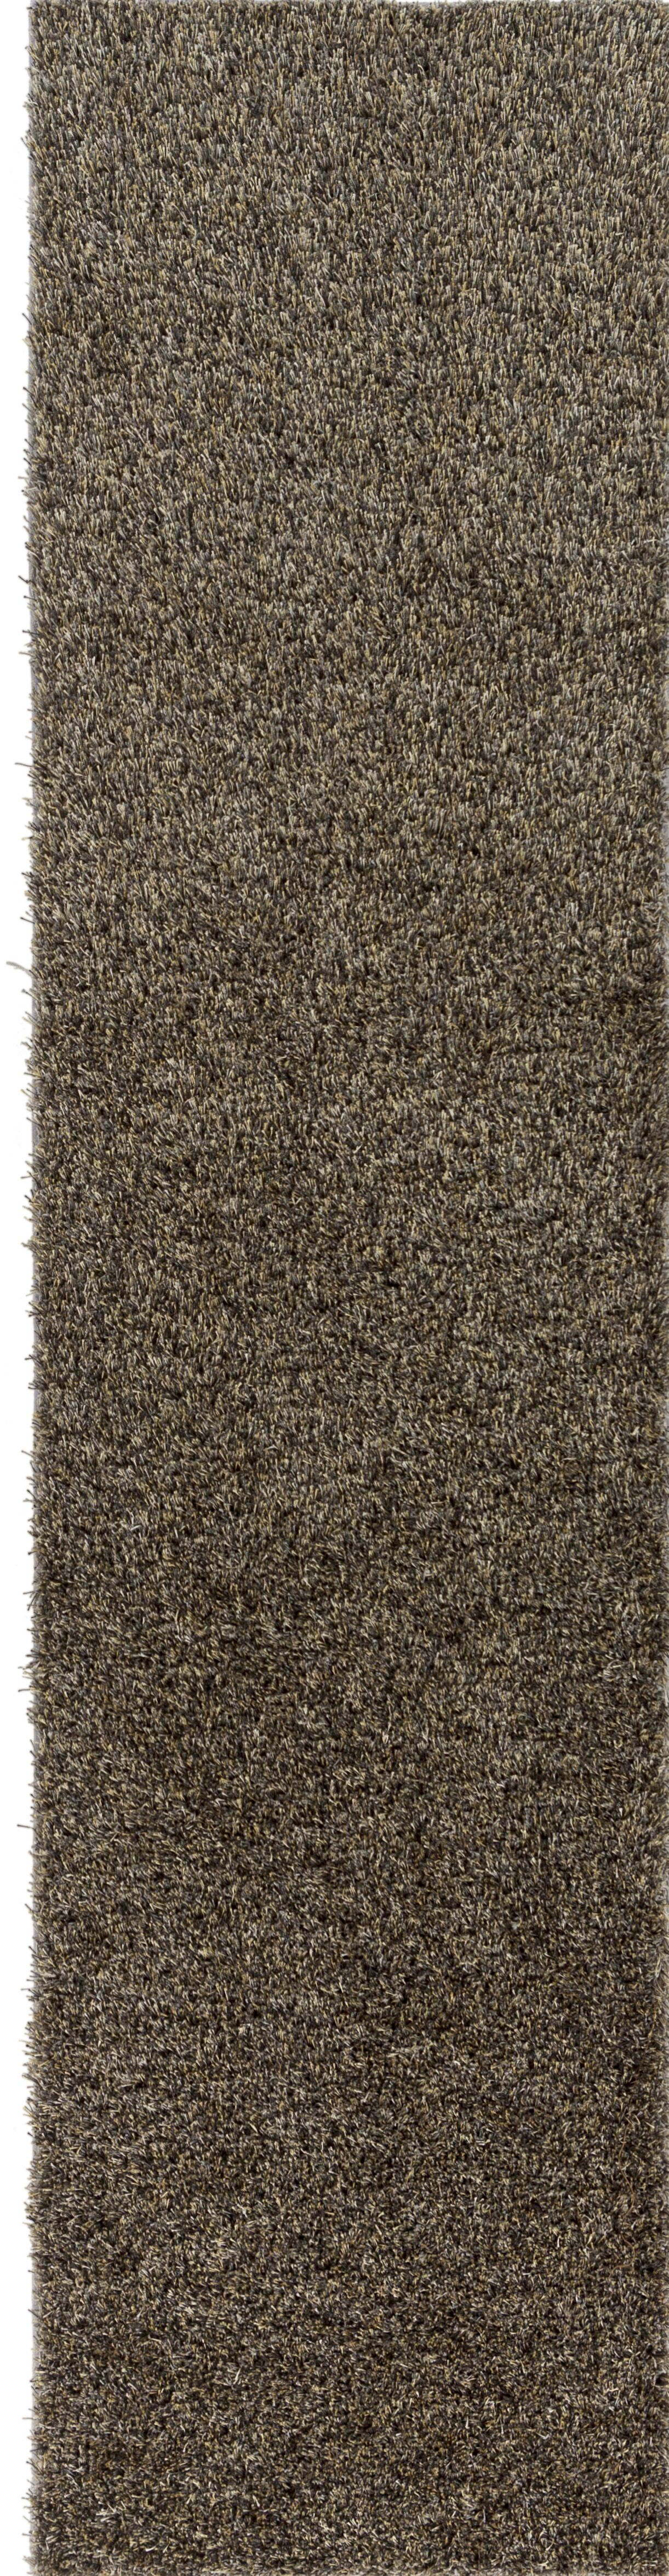 Dulcia Solid Gray Area Rug Rug Size: Runner 2' x 10'